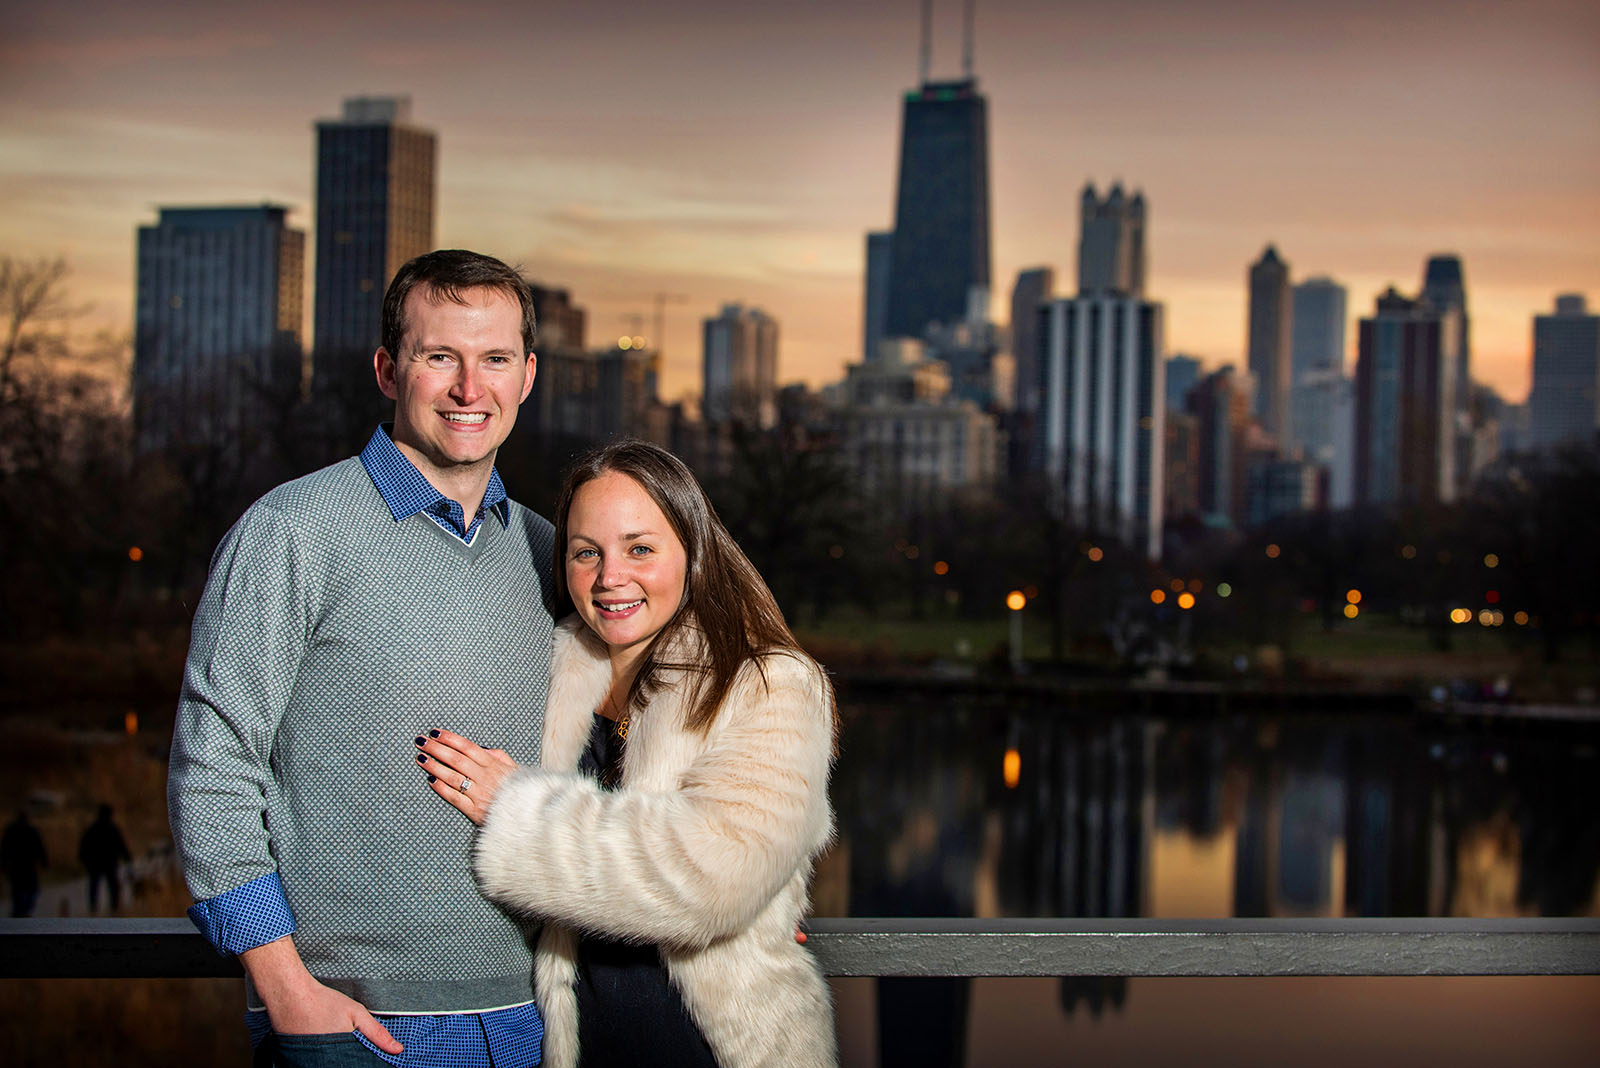 Chicago Skyline Sunset Engagement Session